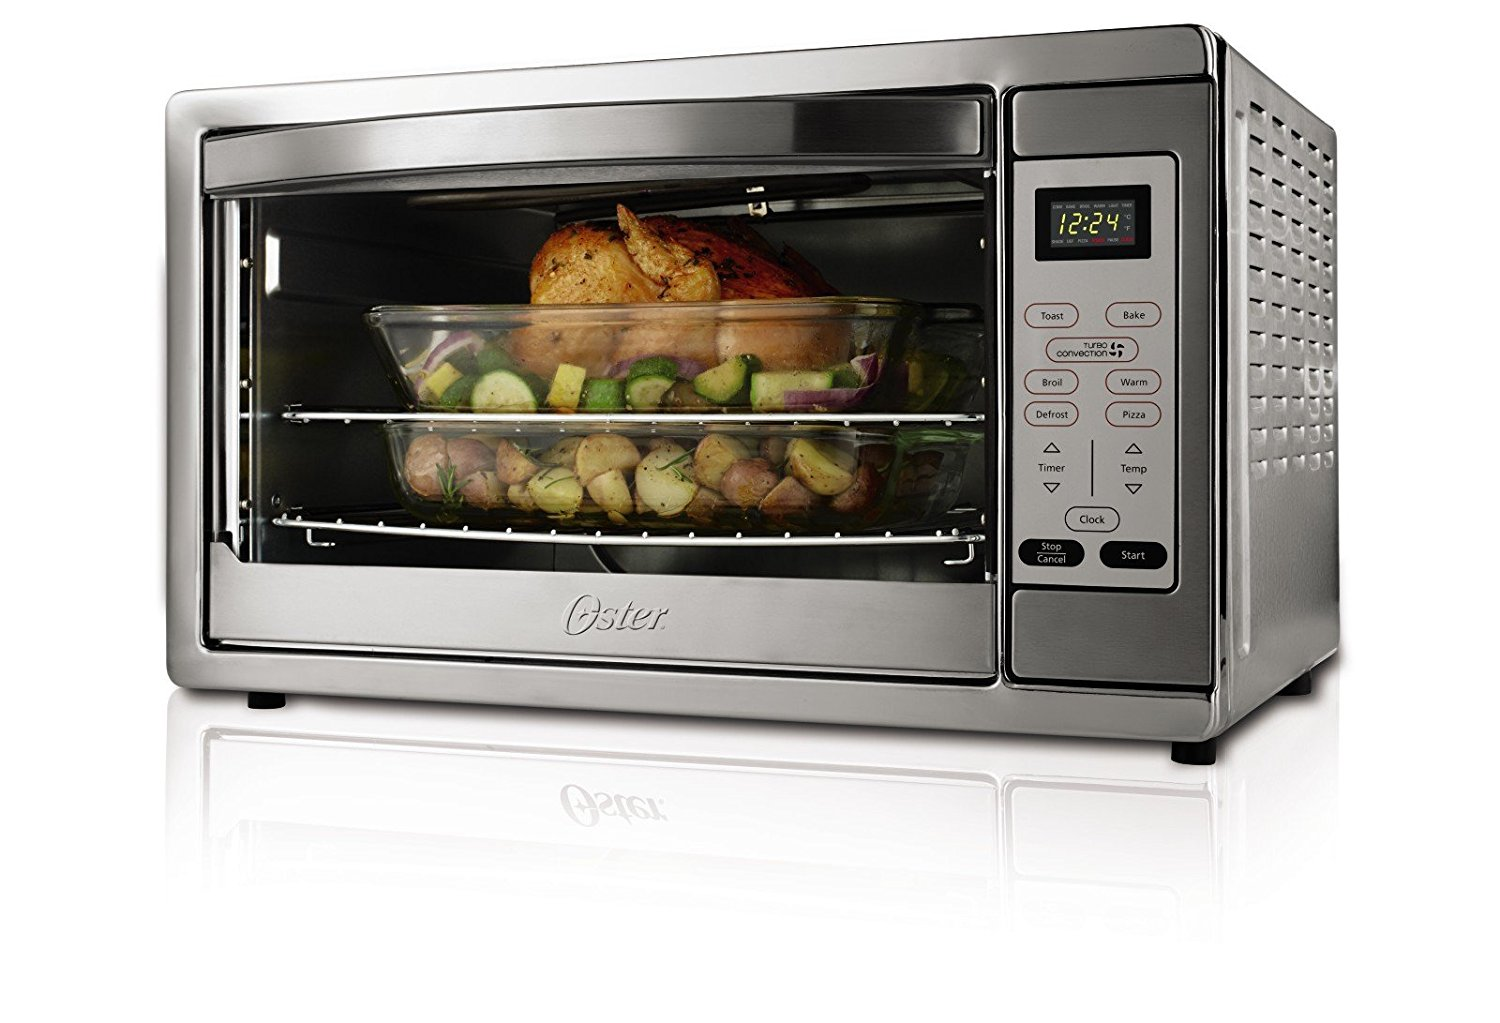 Top 10 Convection Toaster Oven Reviews 5